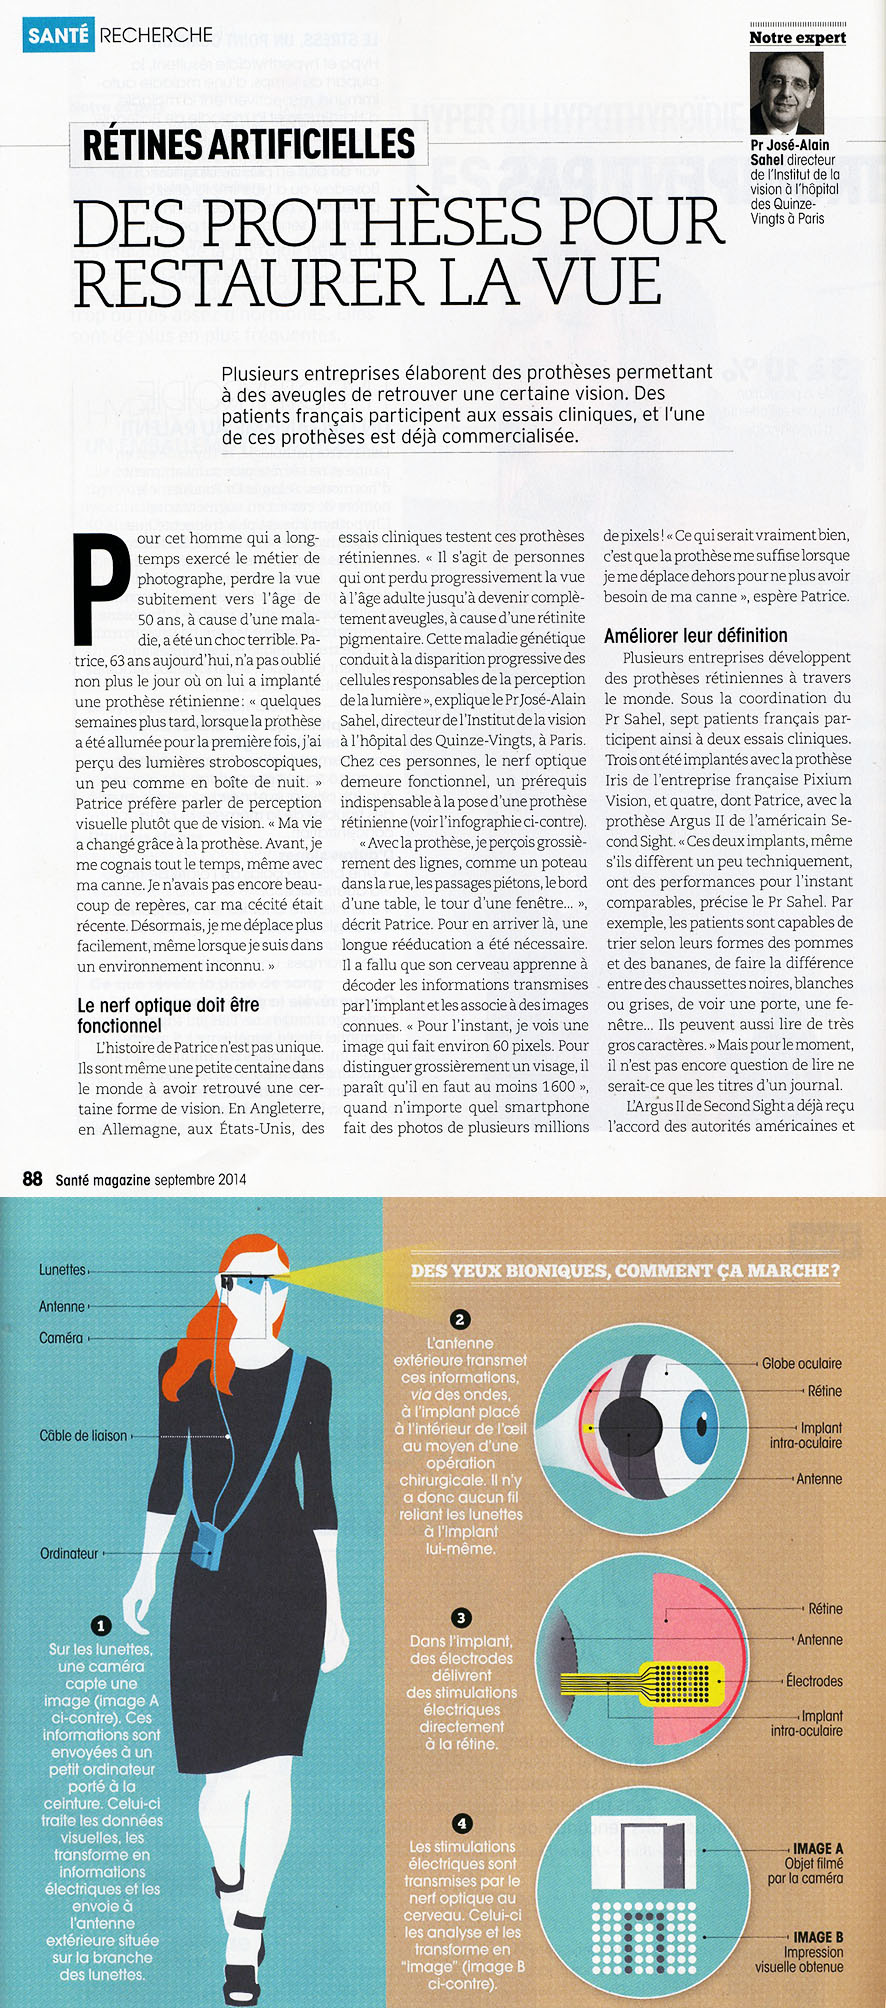 rétine artificielle_sept2014